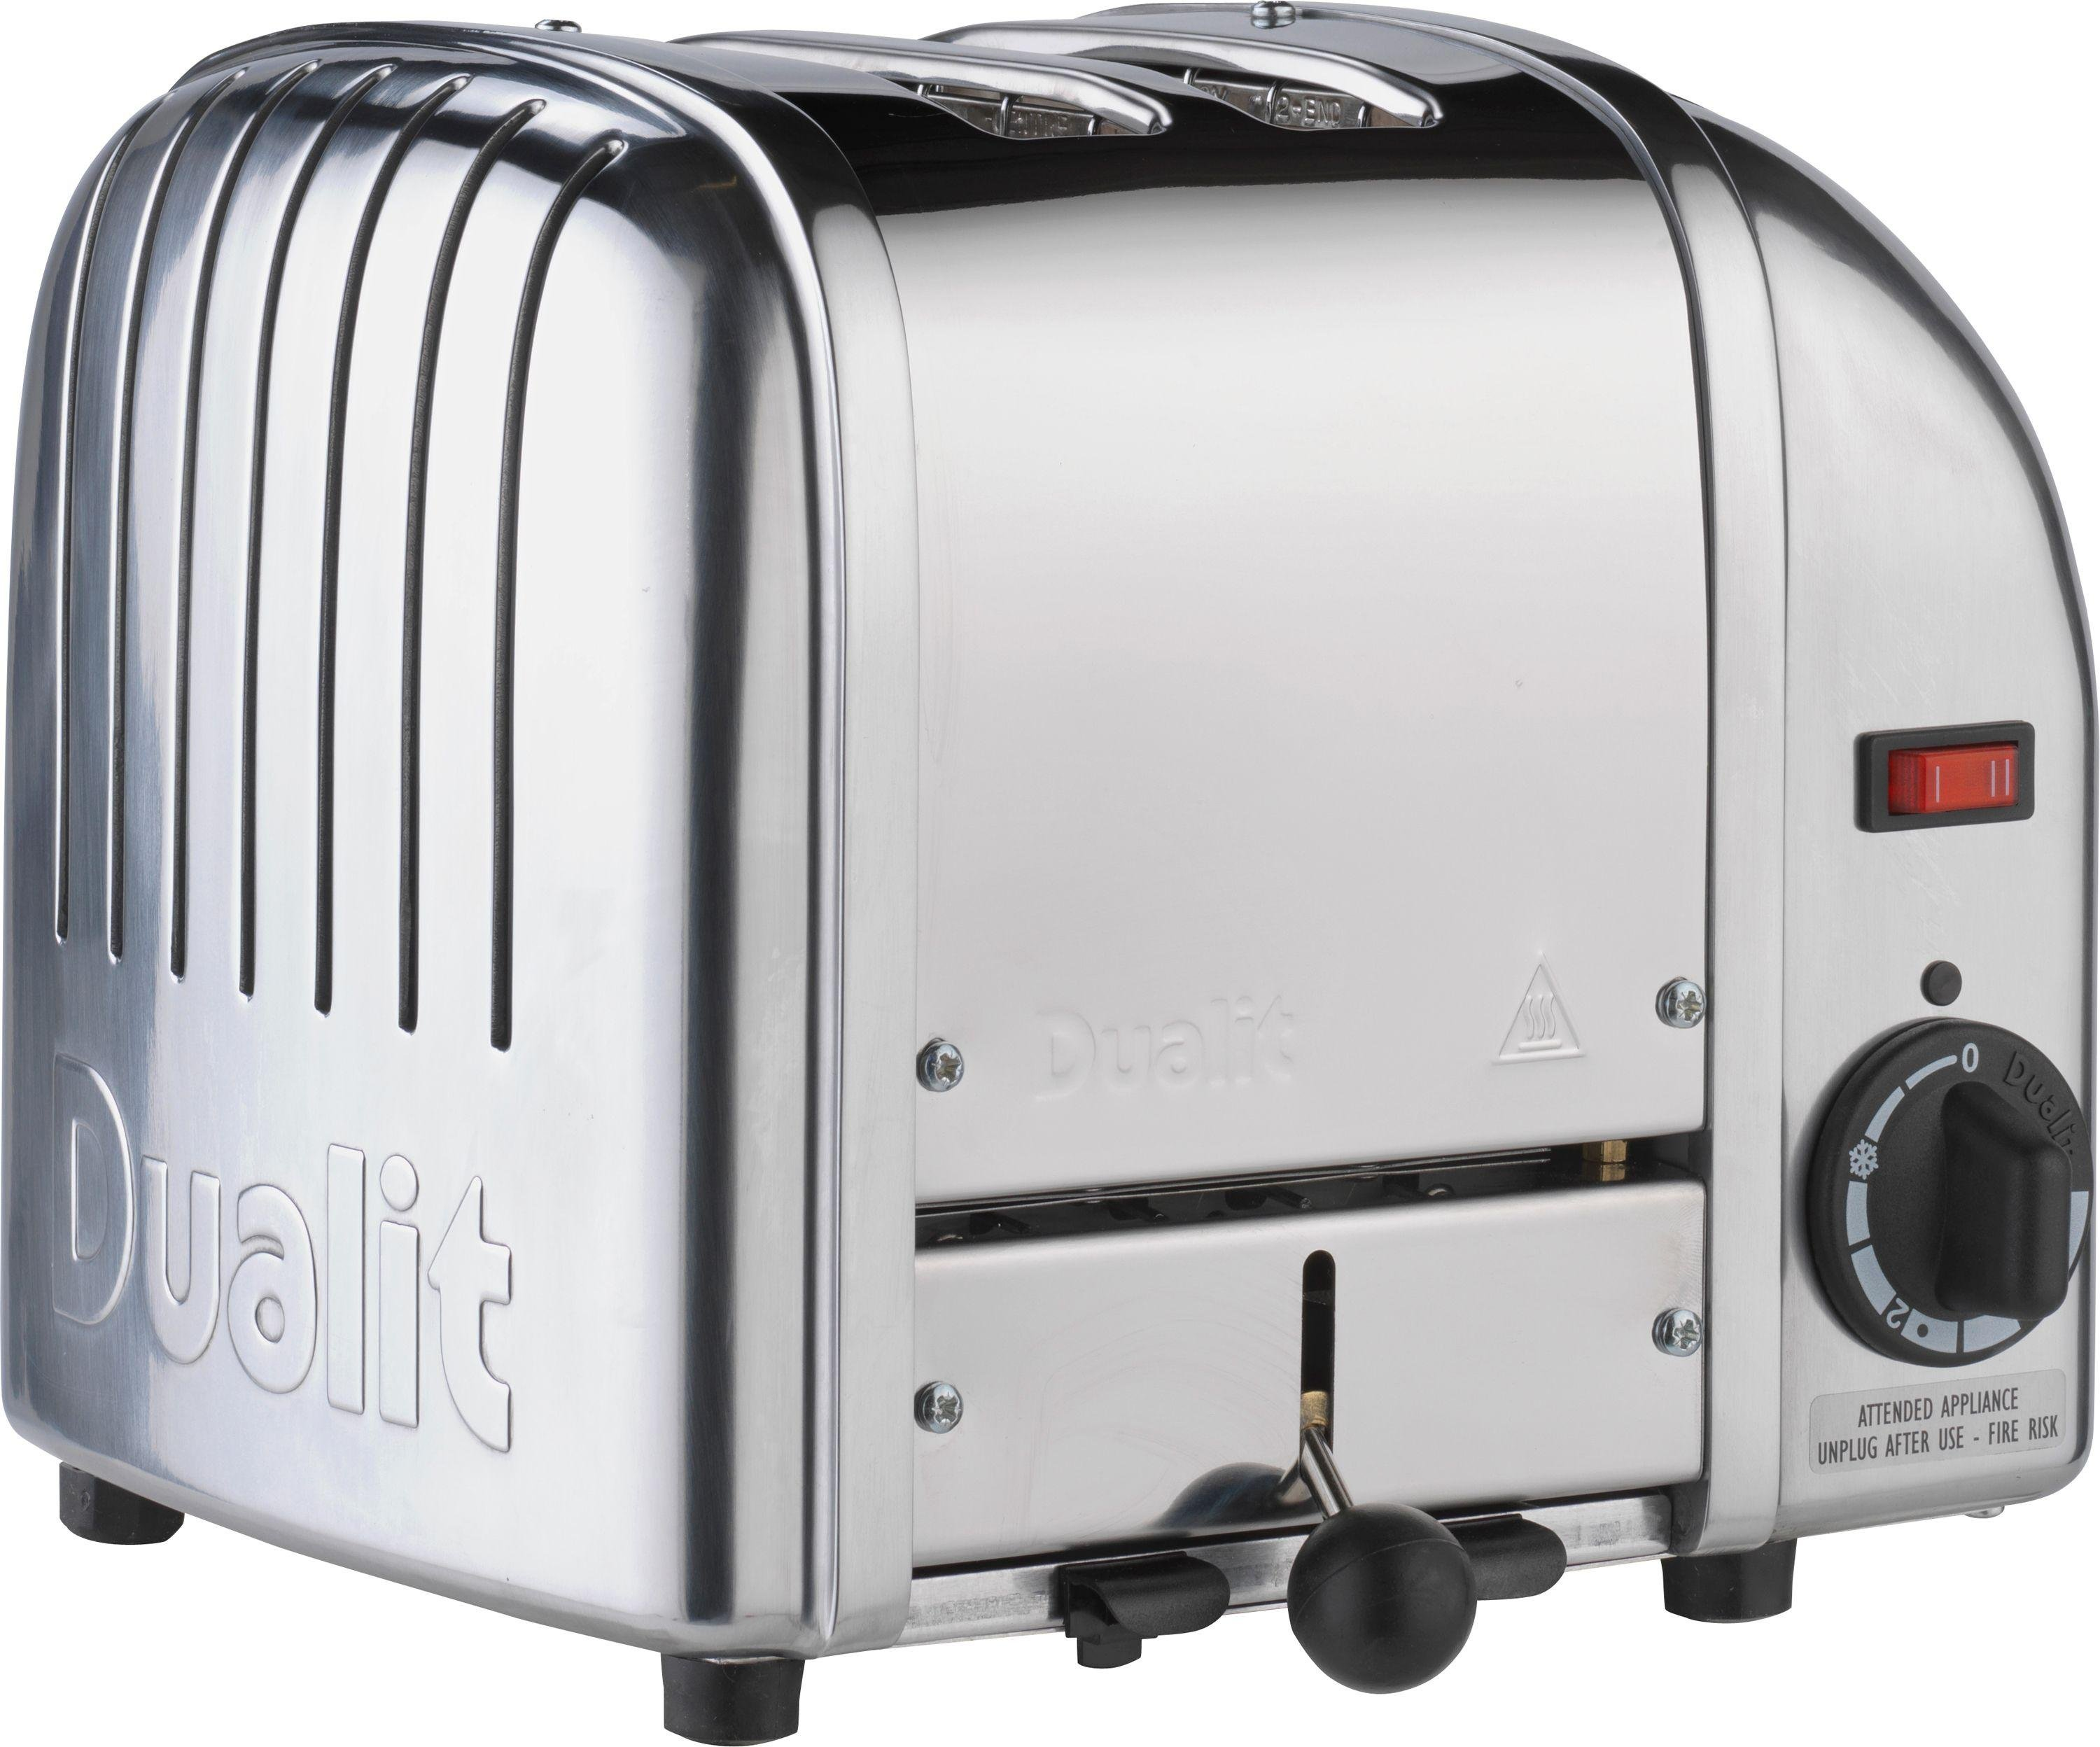 Image of Dualit - Toaster - Vario 20245 - 2 Slice - Stainless Steel.